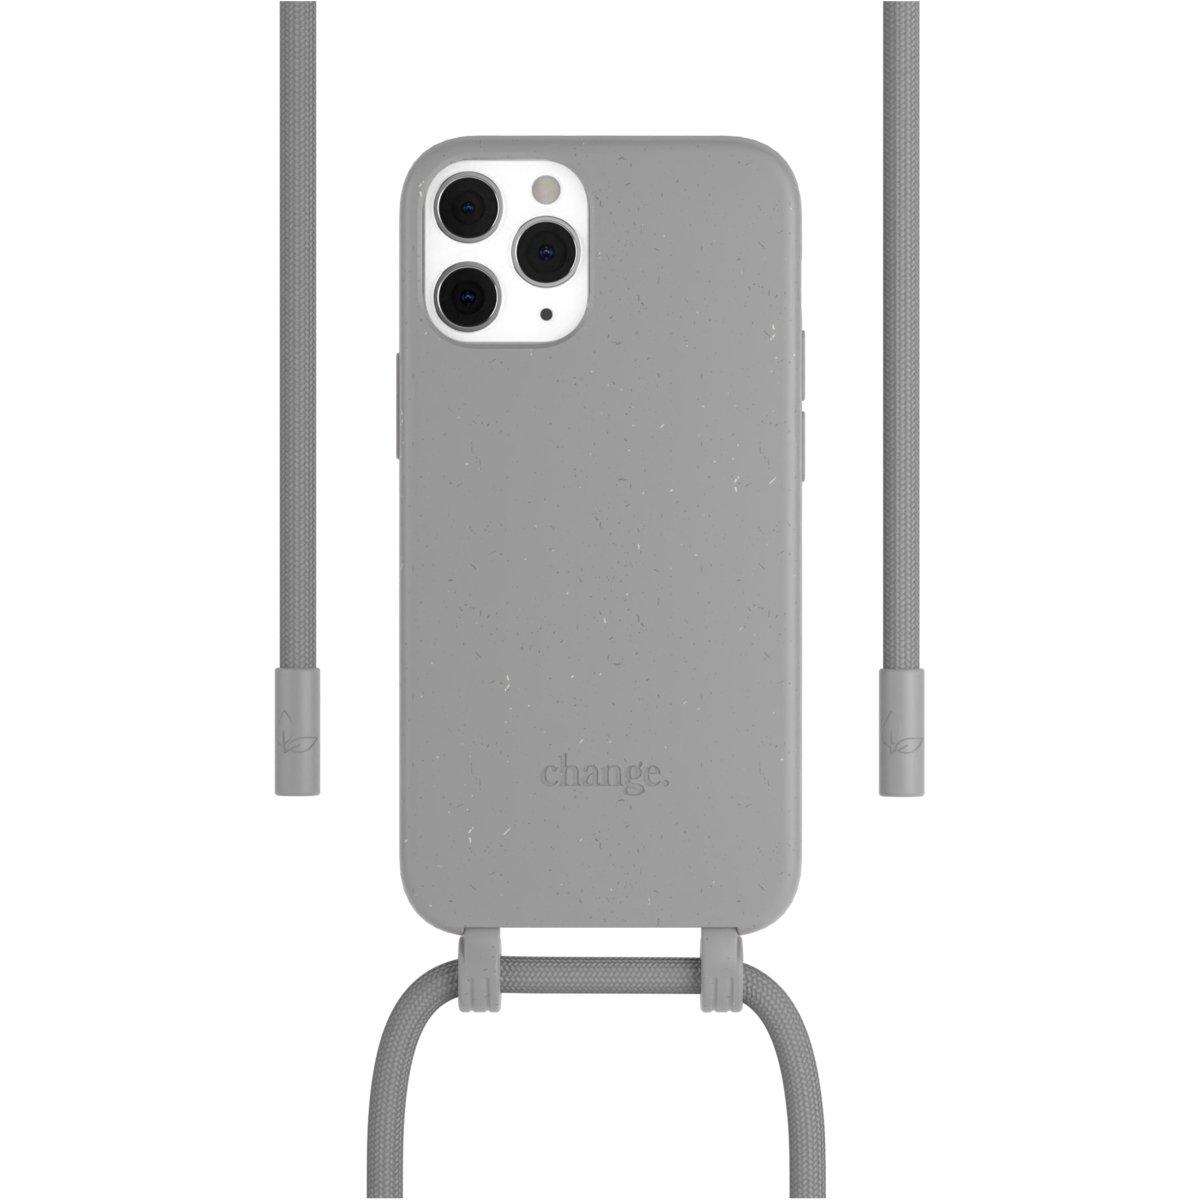 Woodcessories Change Case AM iPhone 12 Pro Max - grey